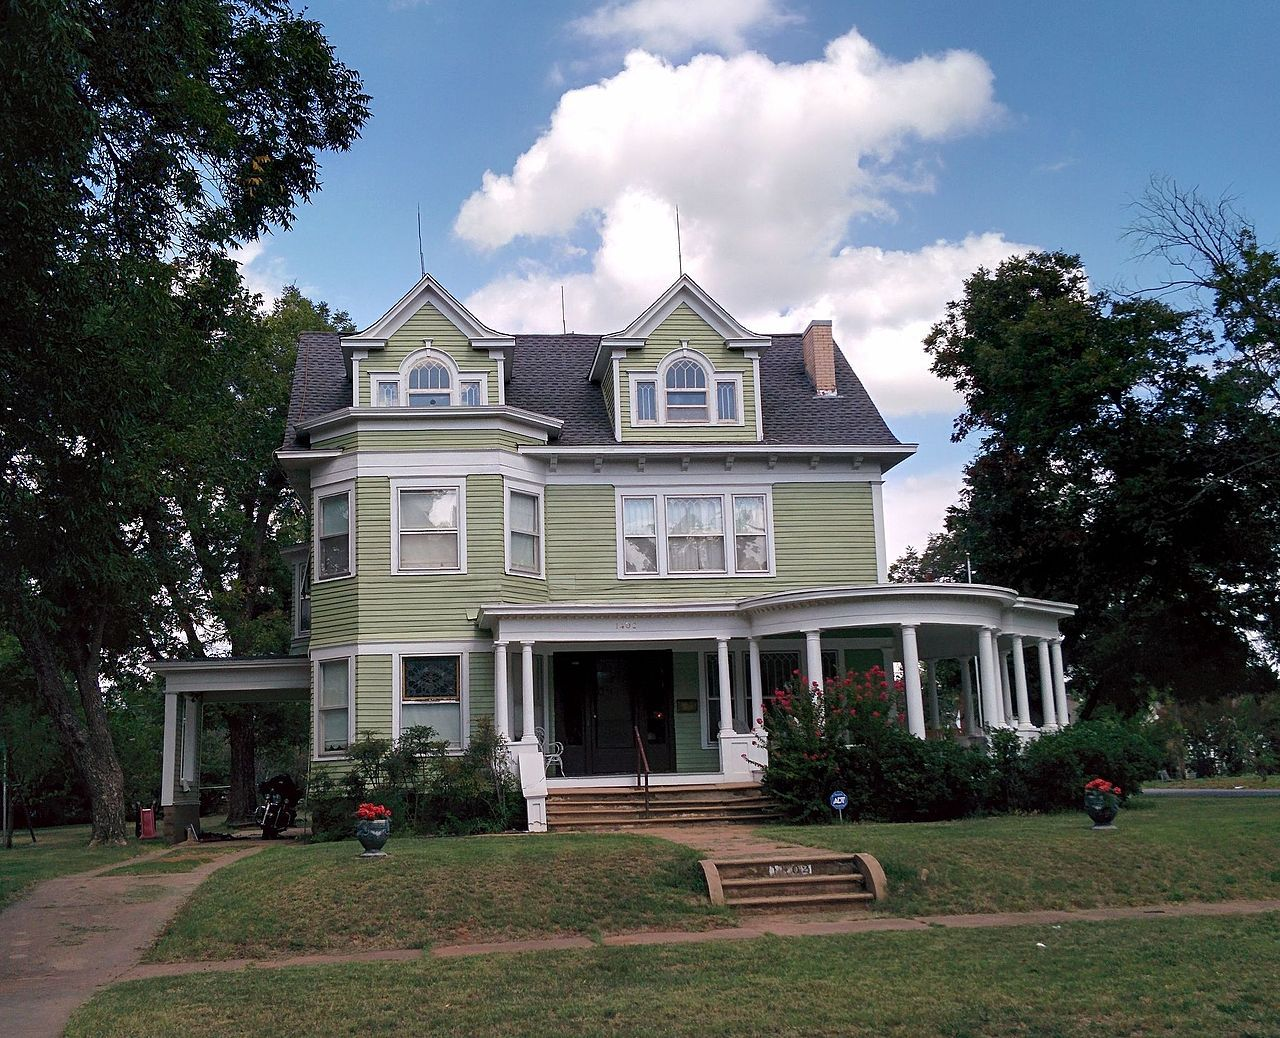 Griffin house in grady county oklahoma with images